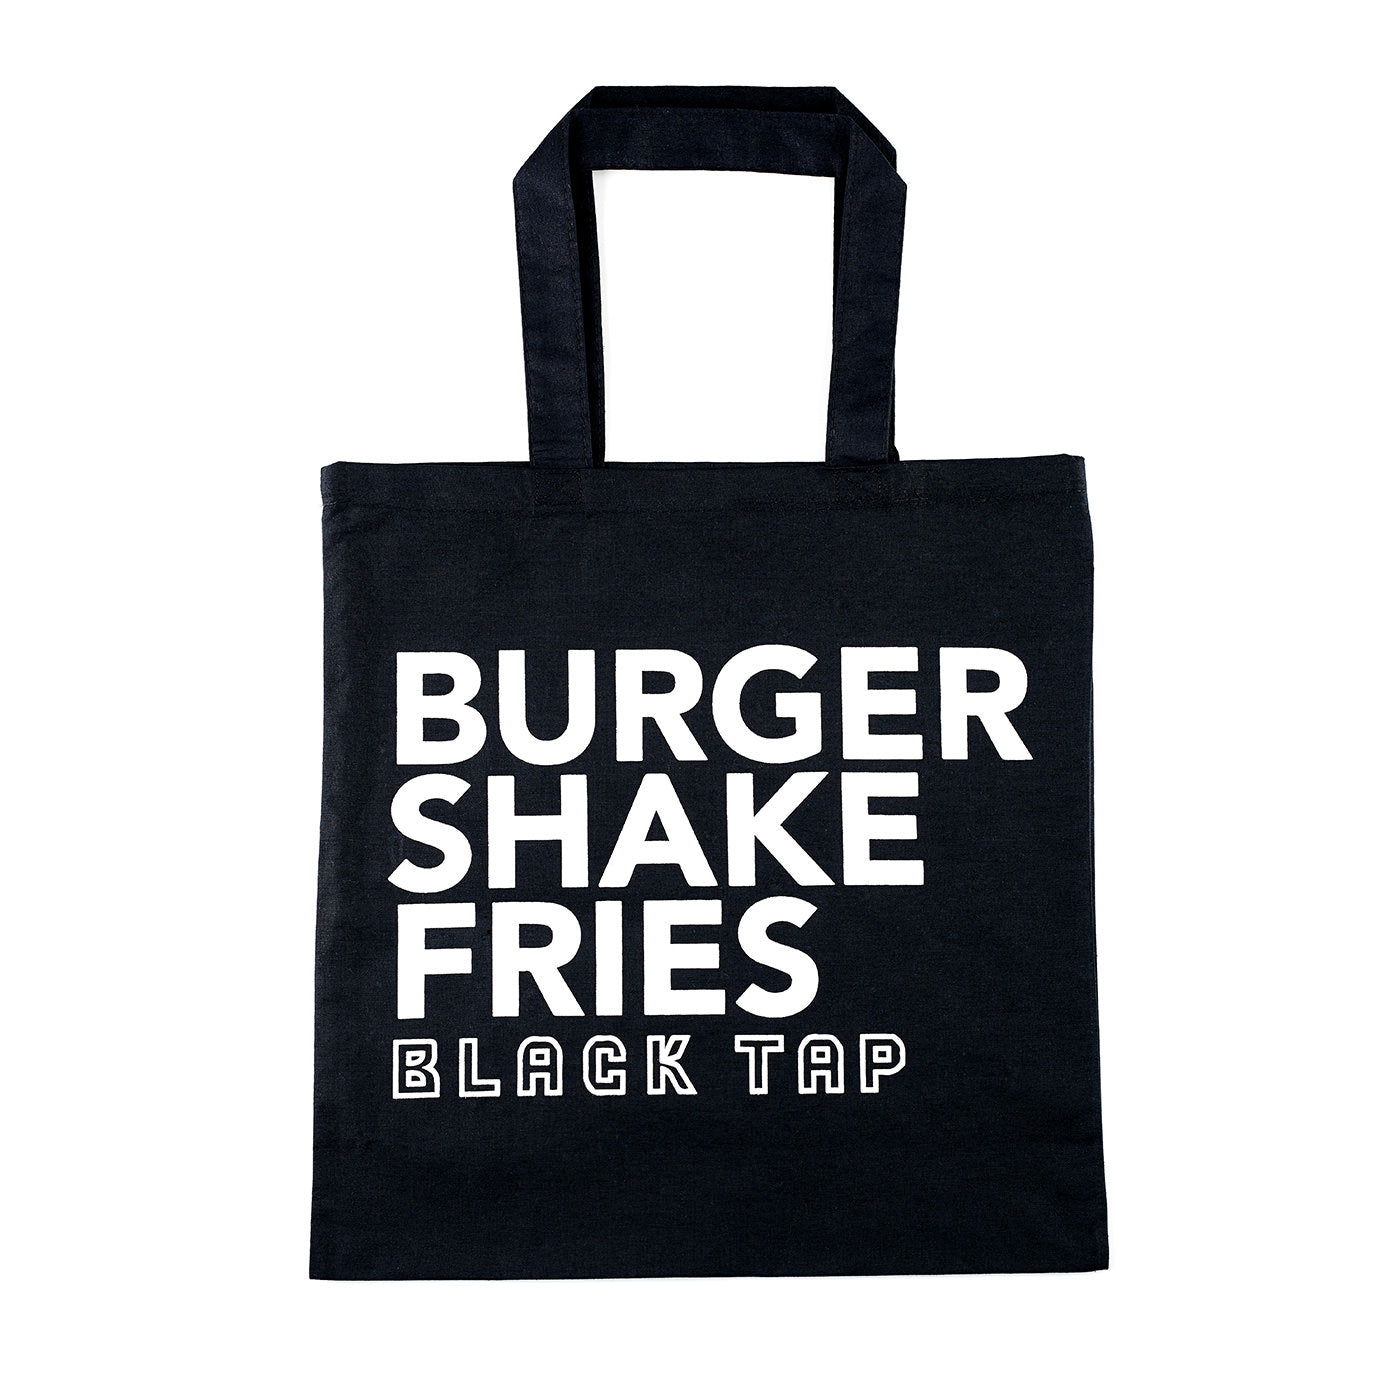 black tote with burger, shake, fries text